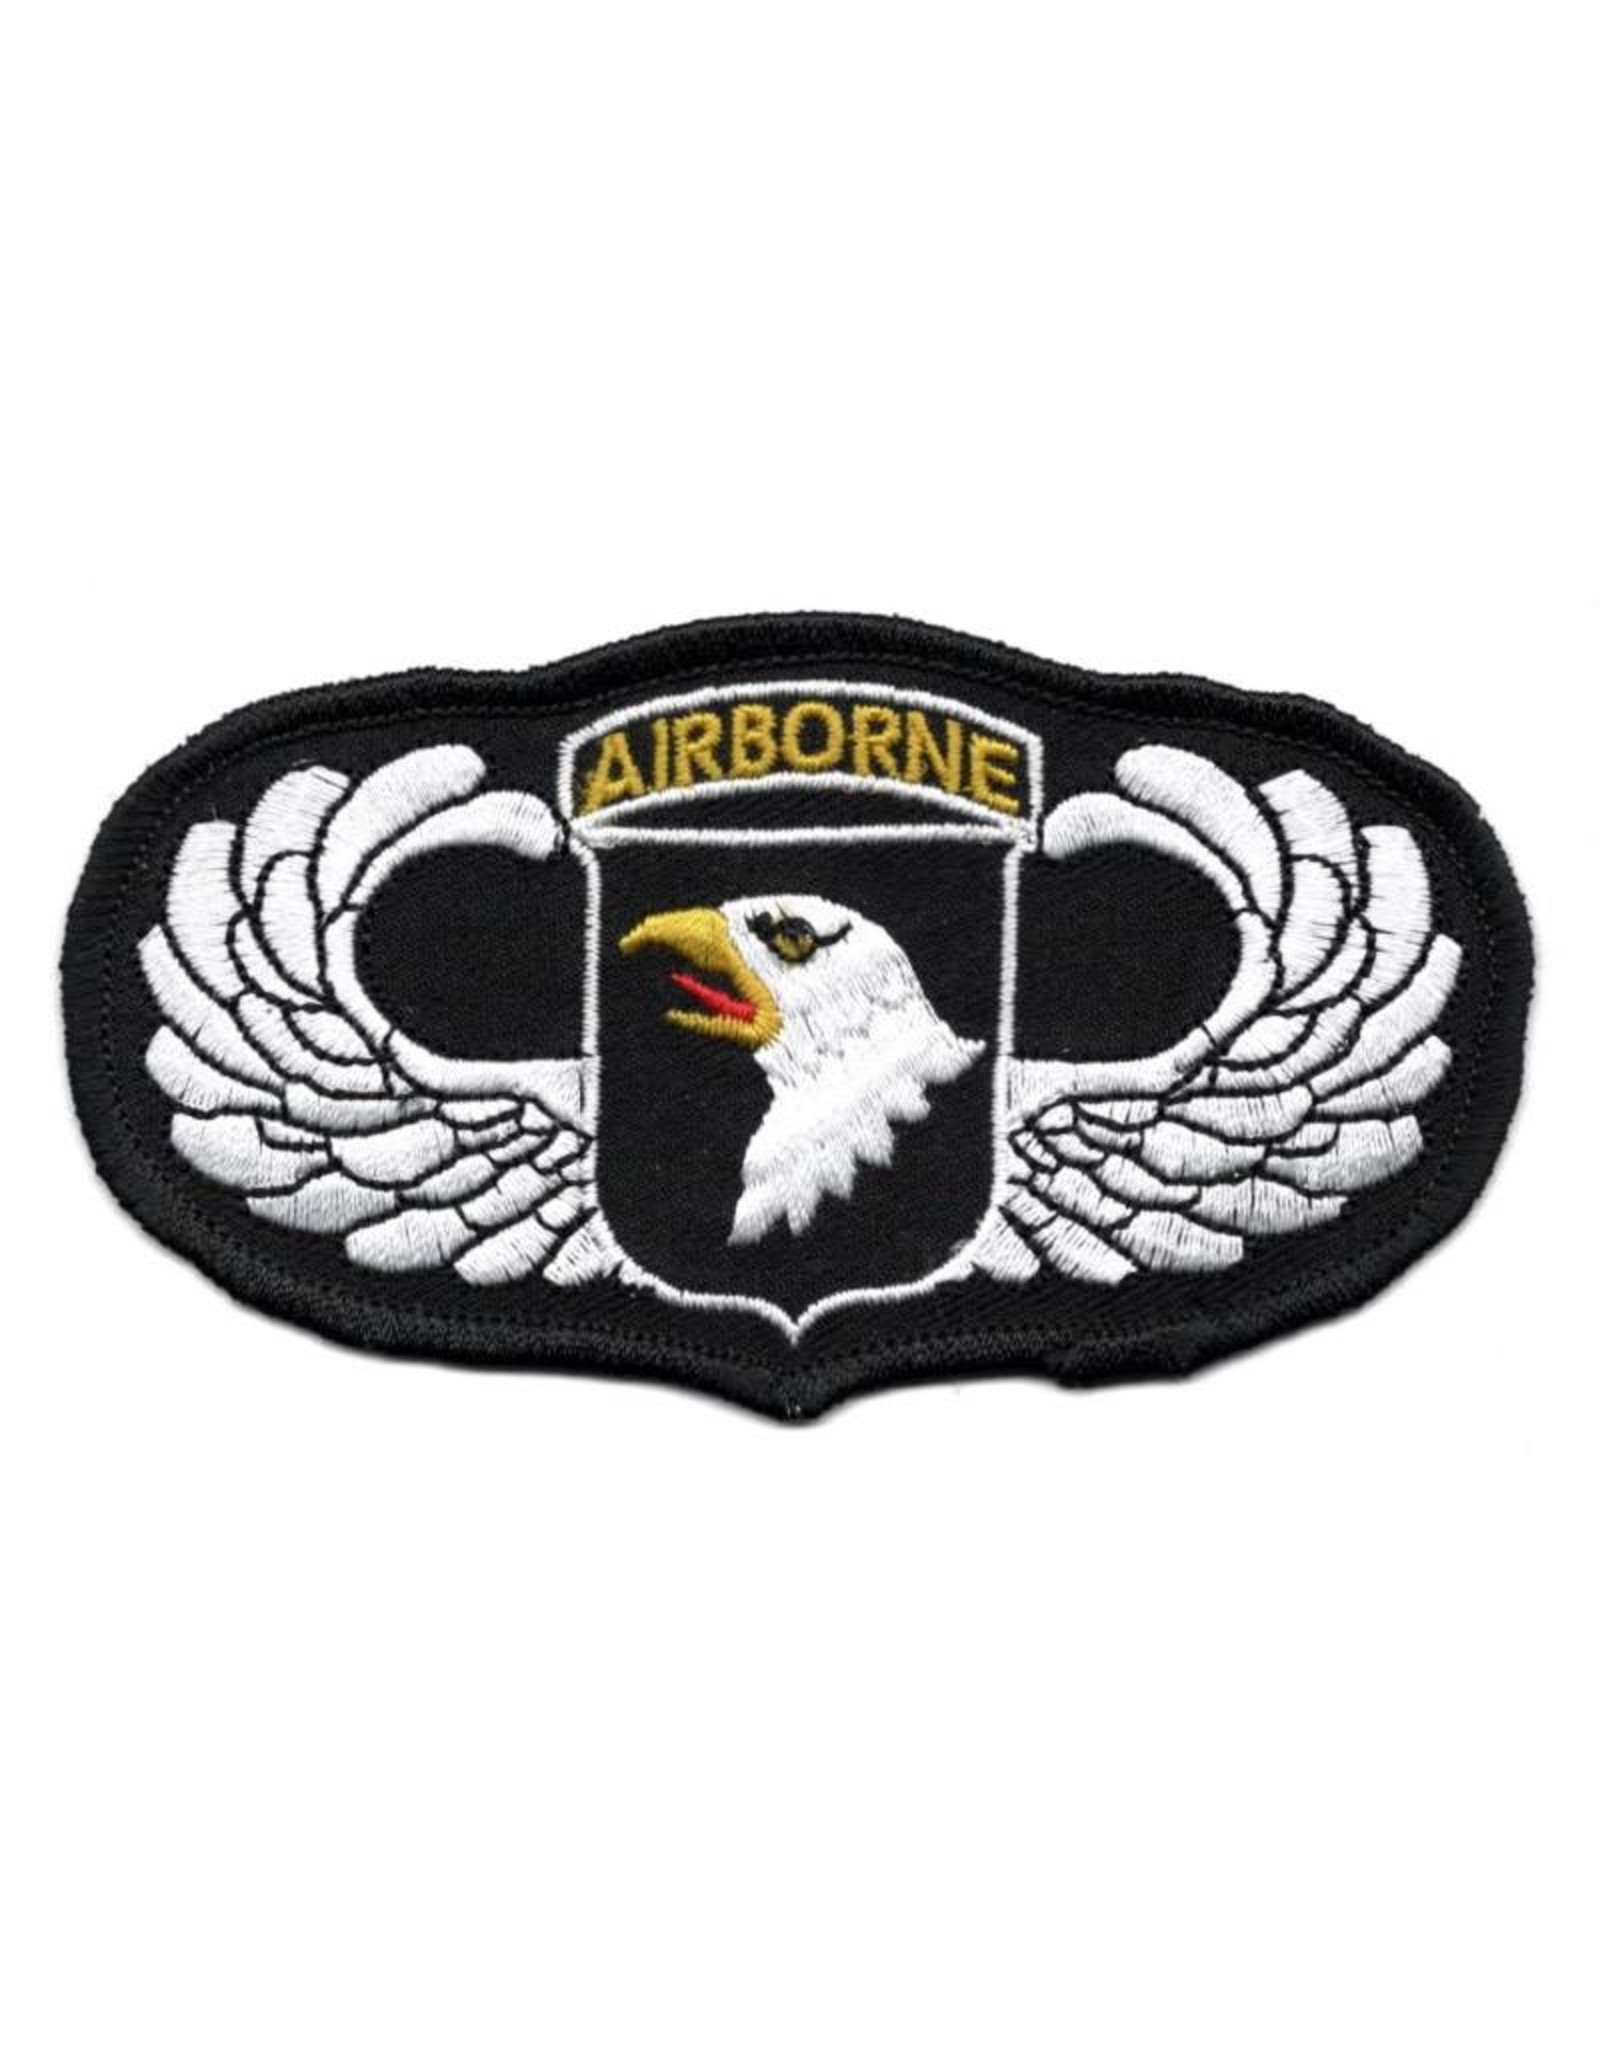 "MidMil Embroidered 101st Airborne Wings Patch with Emblem 4.5"" wide x 2.5"" high"